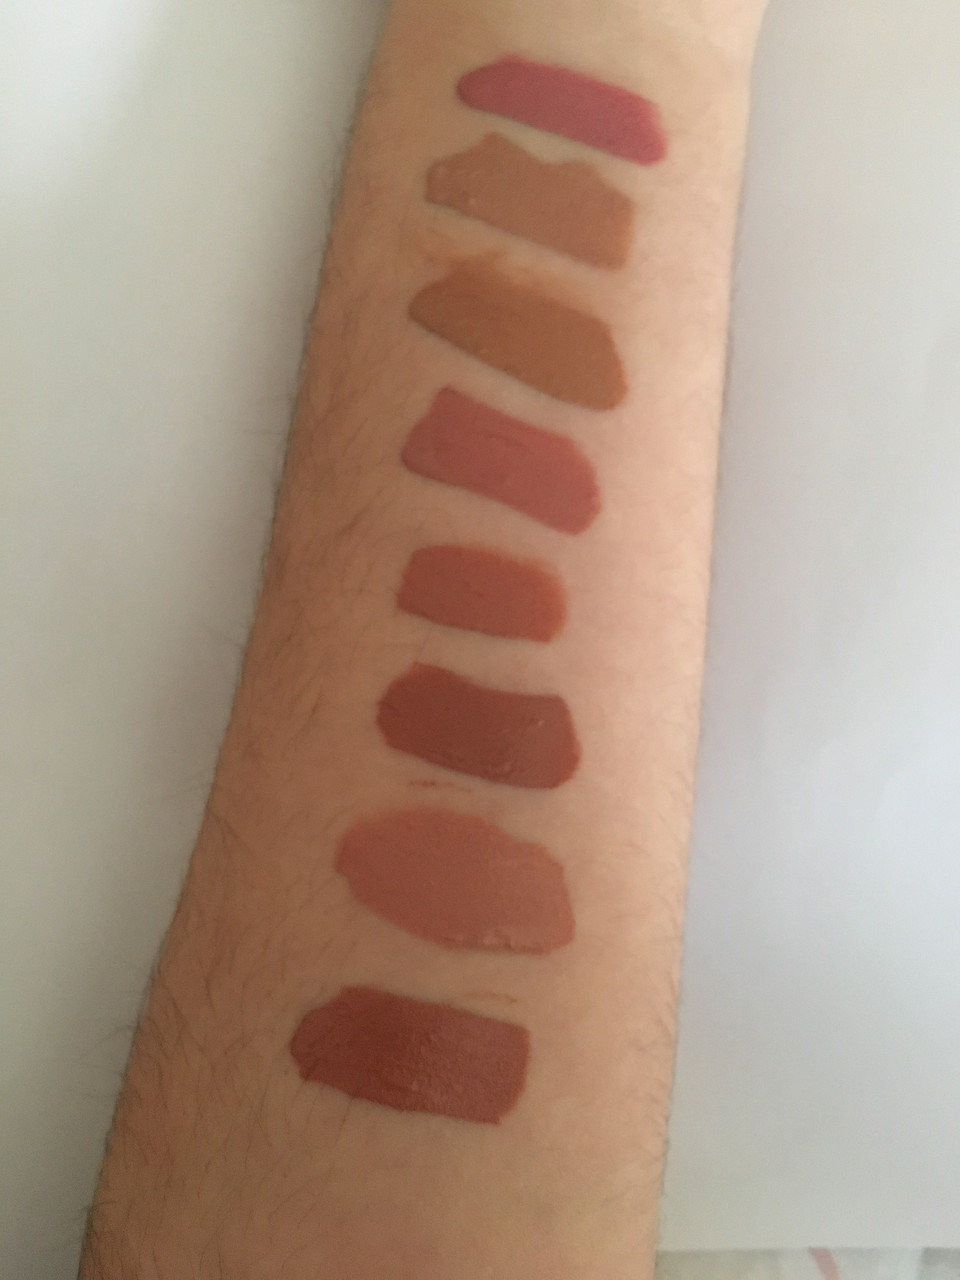 From Left To Right: KYLIE, Birthday Suit, Naked, Bare, Commando (matte), Khlo$, French Kiss, Commando (velvet)